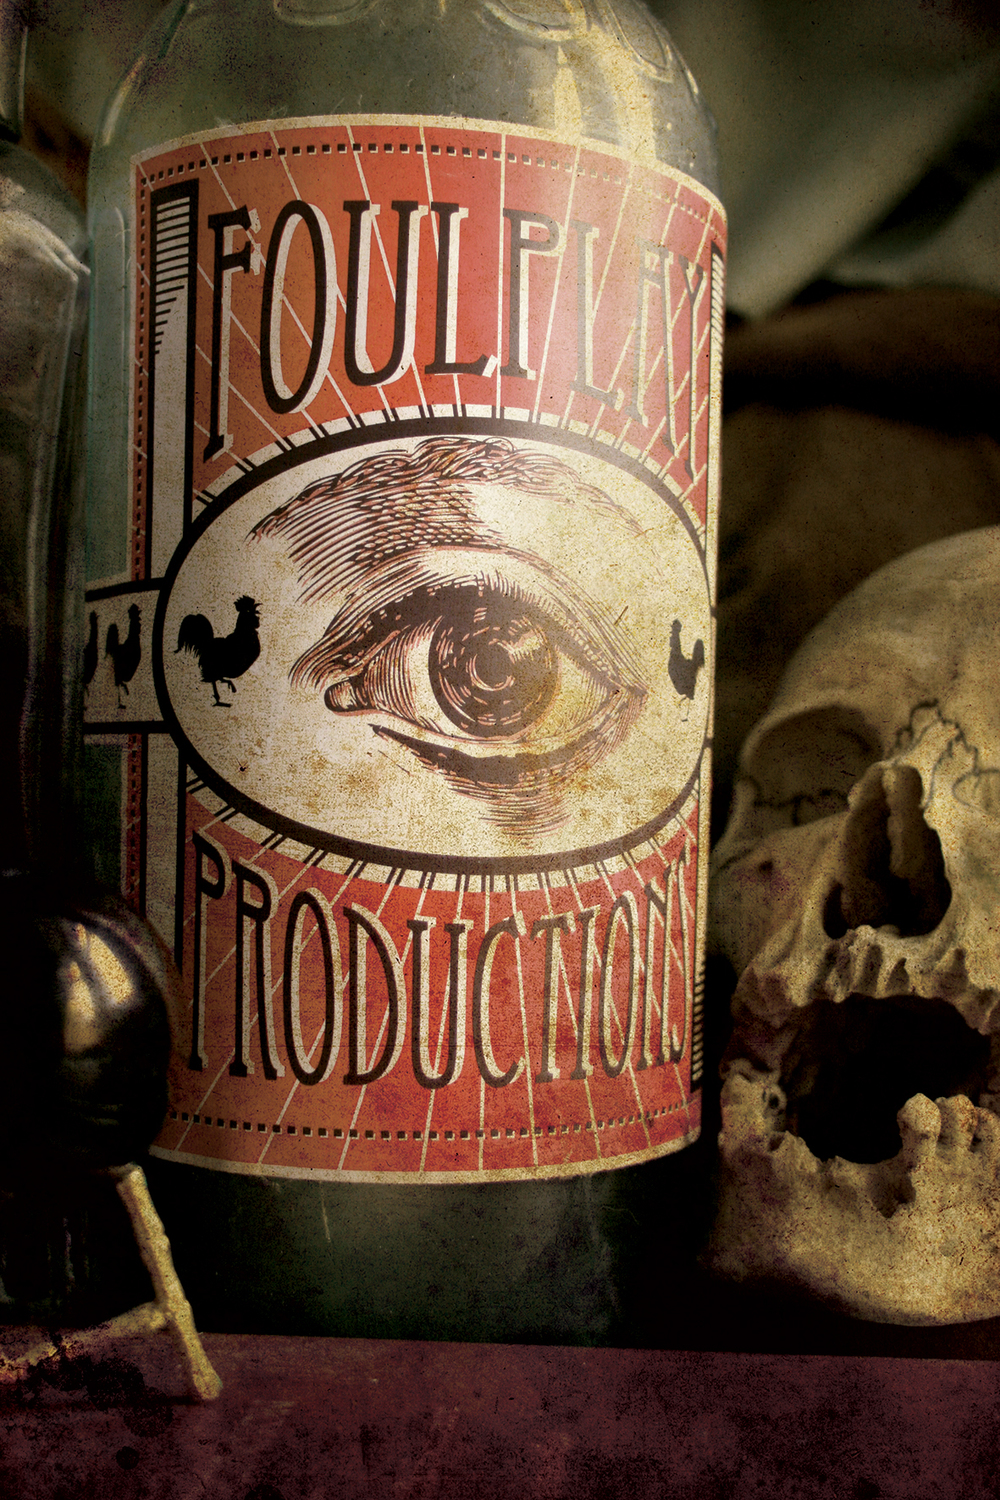 Poison bottle for FoulPlay Theatre company. Image for promo material. Photography and design by Ulysses Black 2010